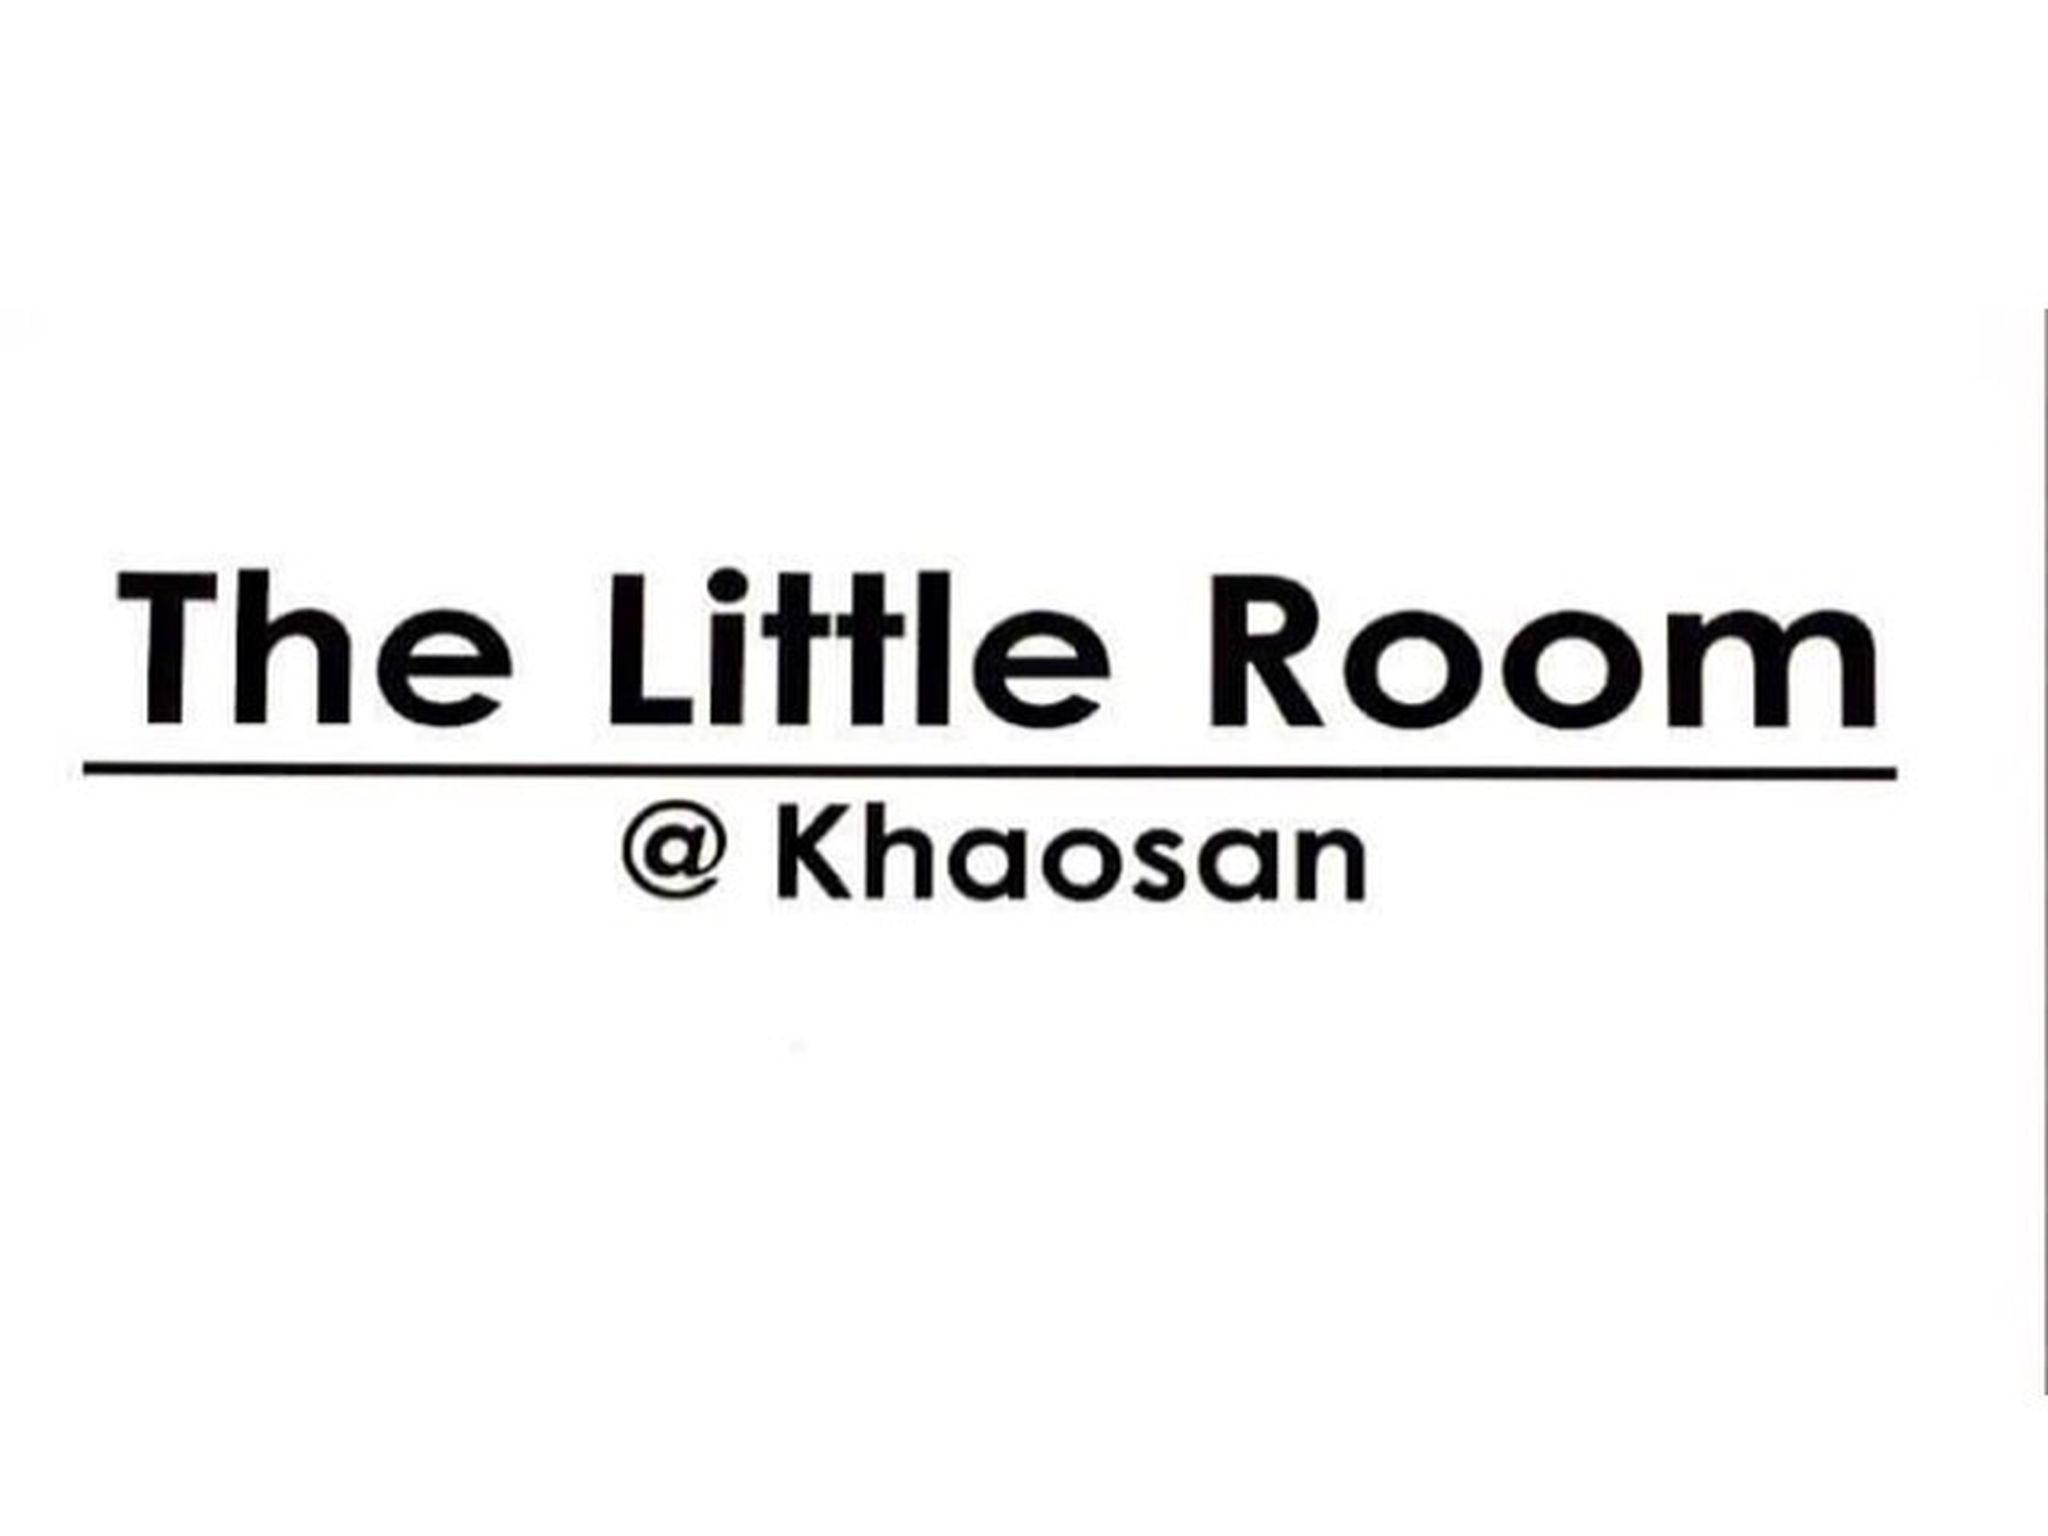 The Little Room The Little Room